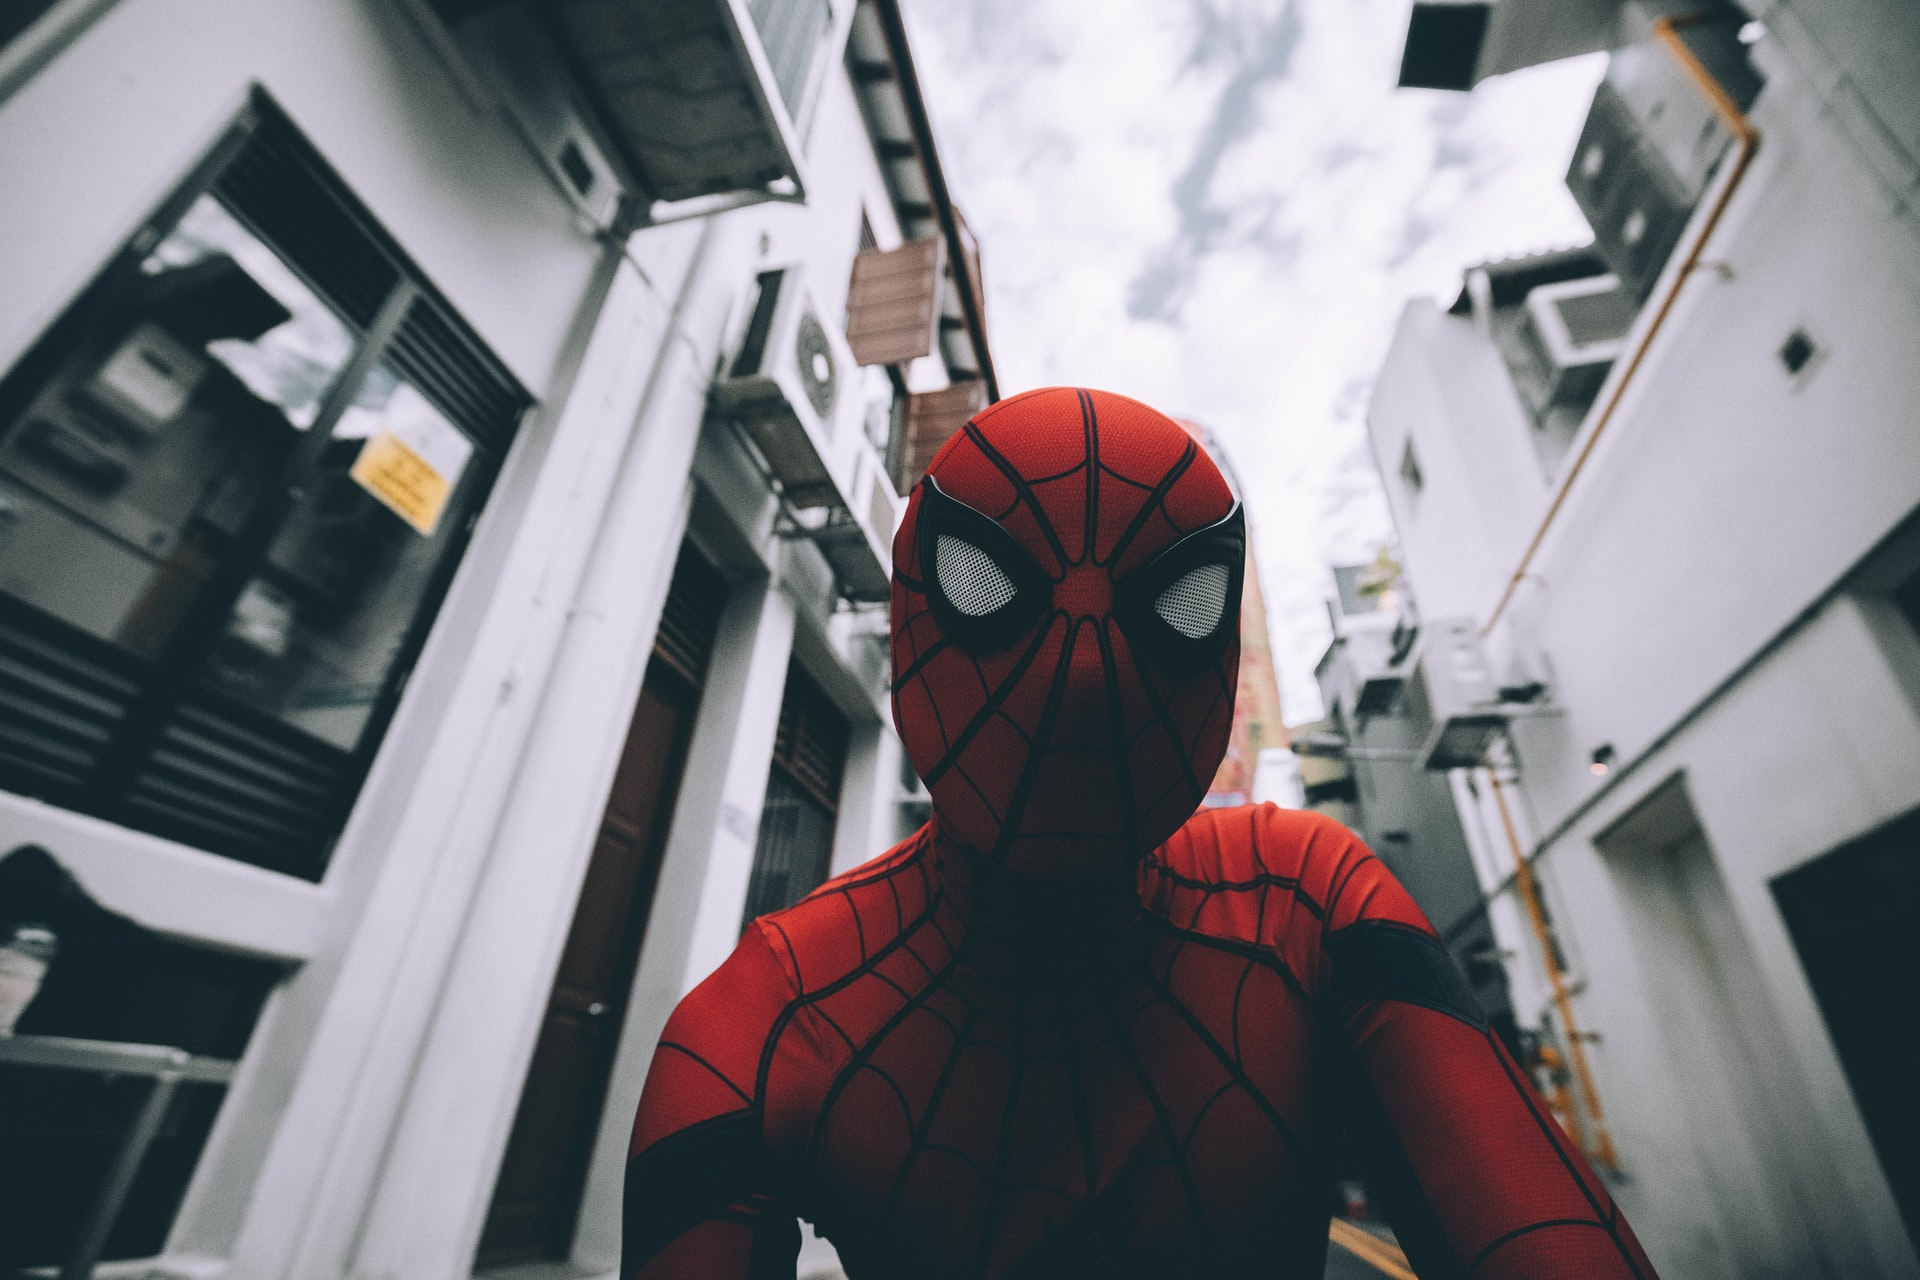 This image shows a person in fancy dress as Spiderman as the low angle photo looks up on buildings towering over the character.